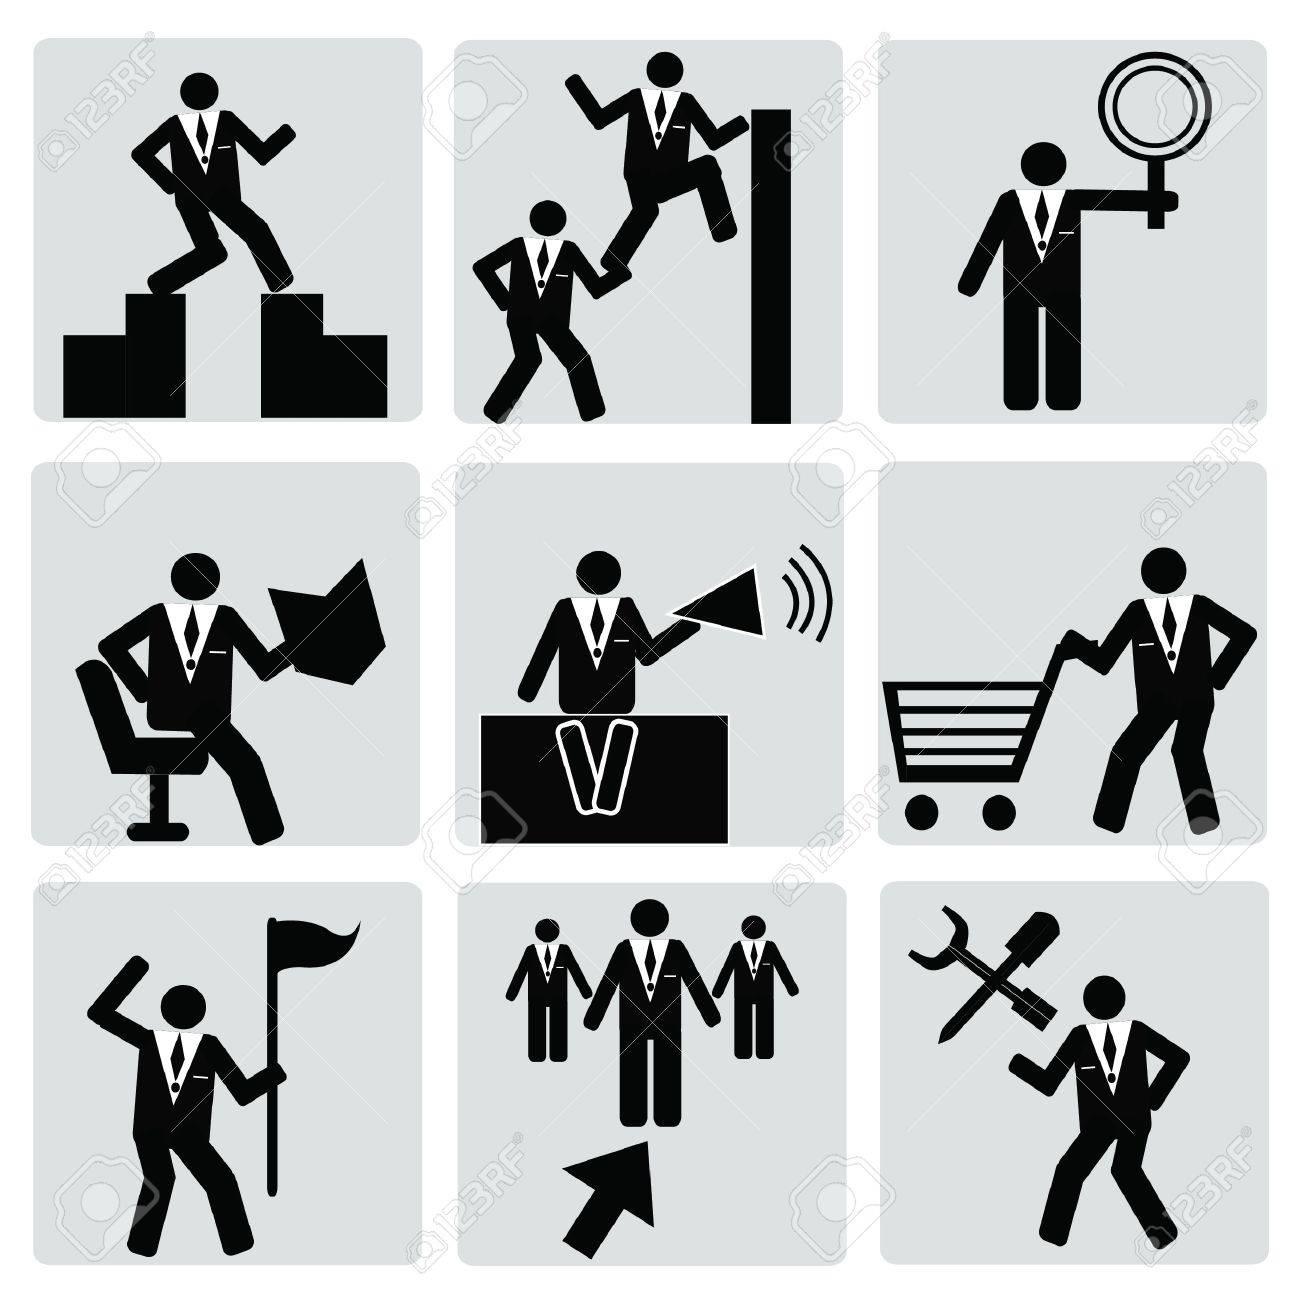 Business   human resource,management icon set,Vector Stock Vector - 18750792